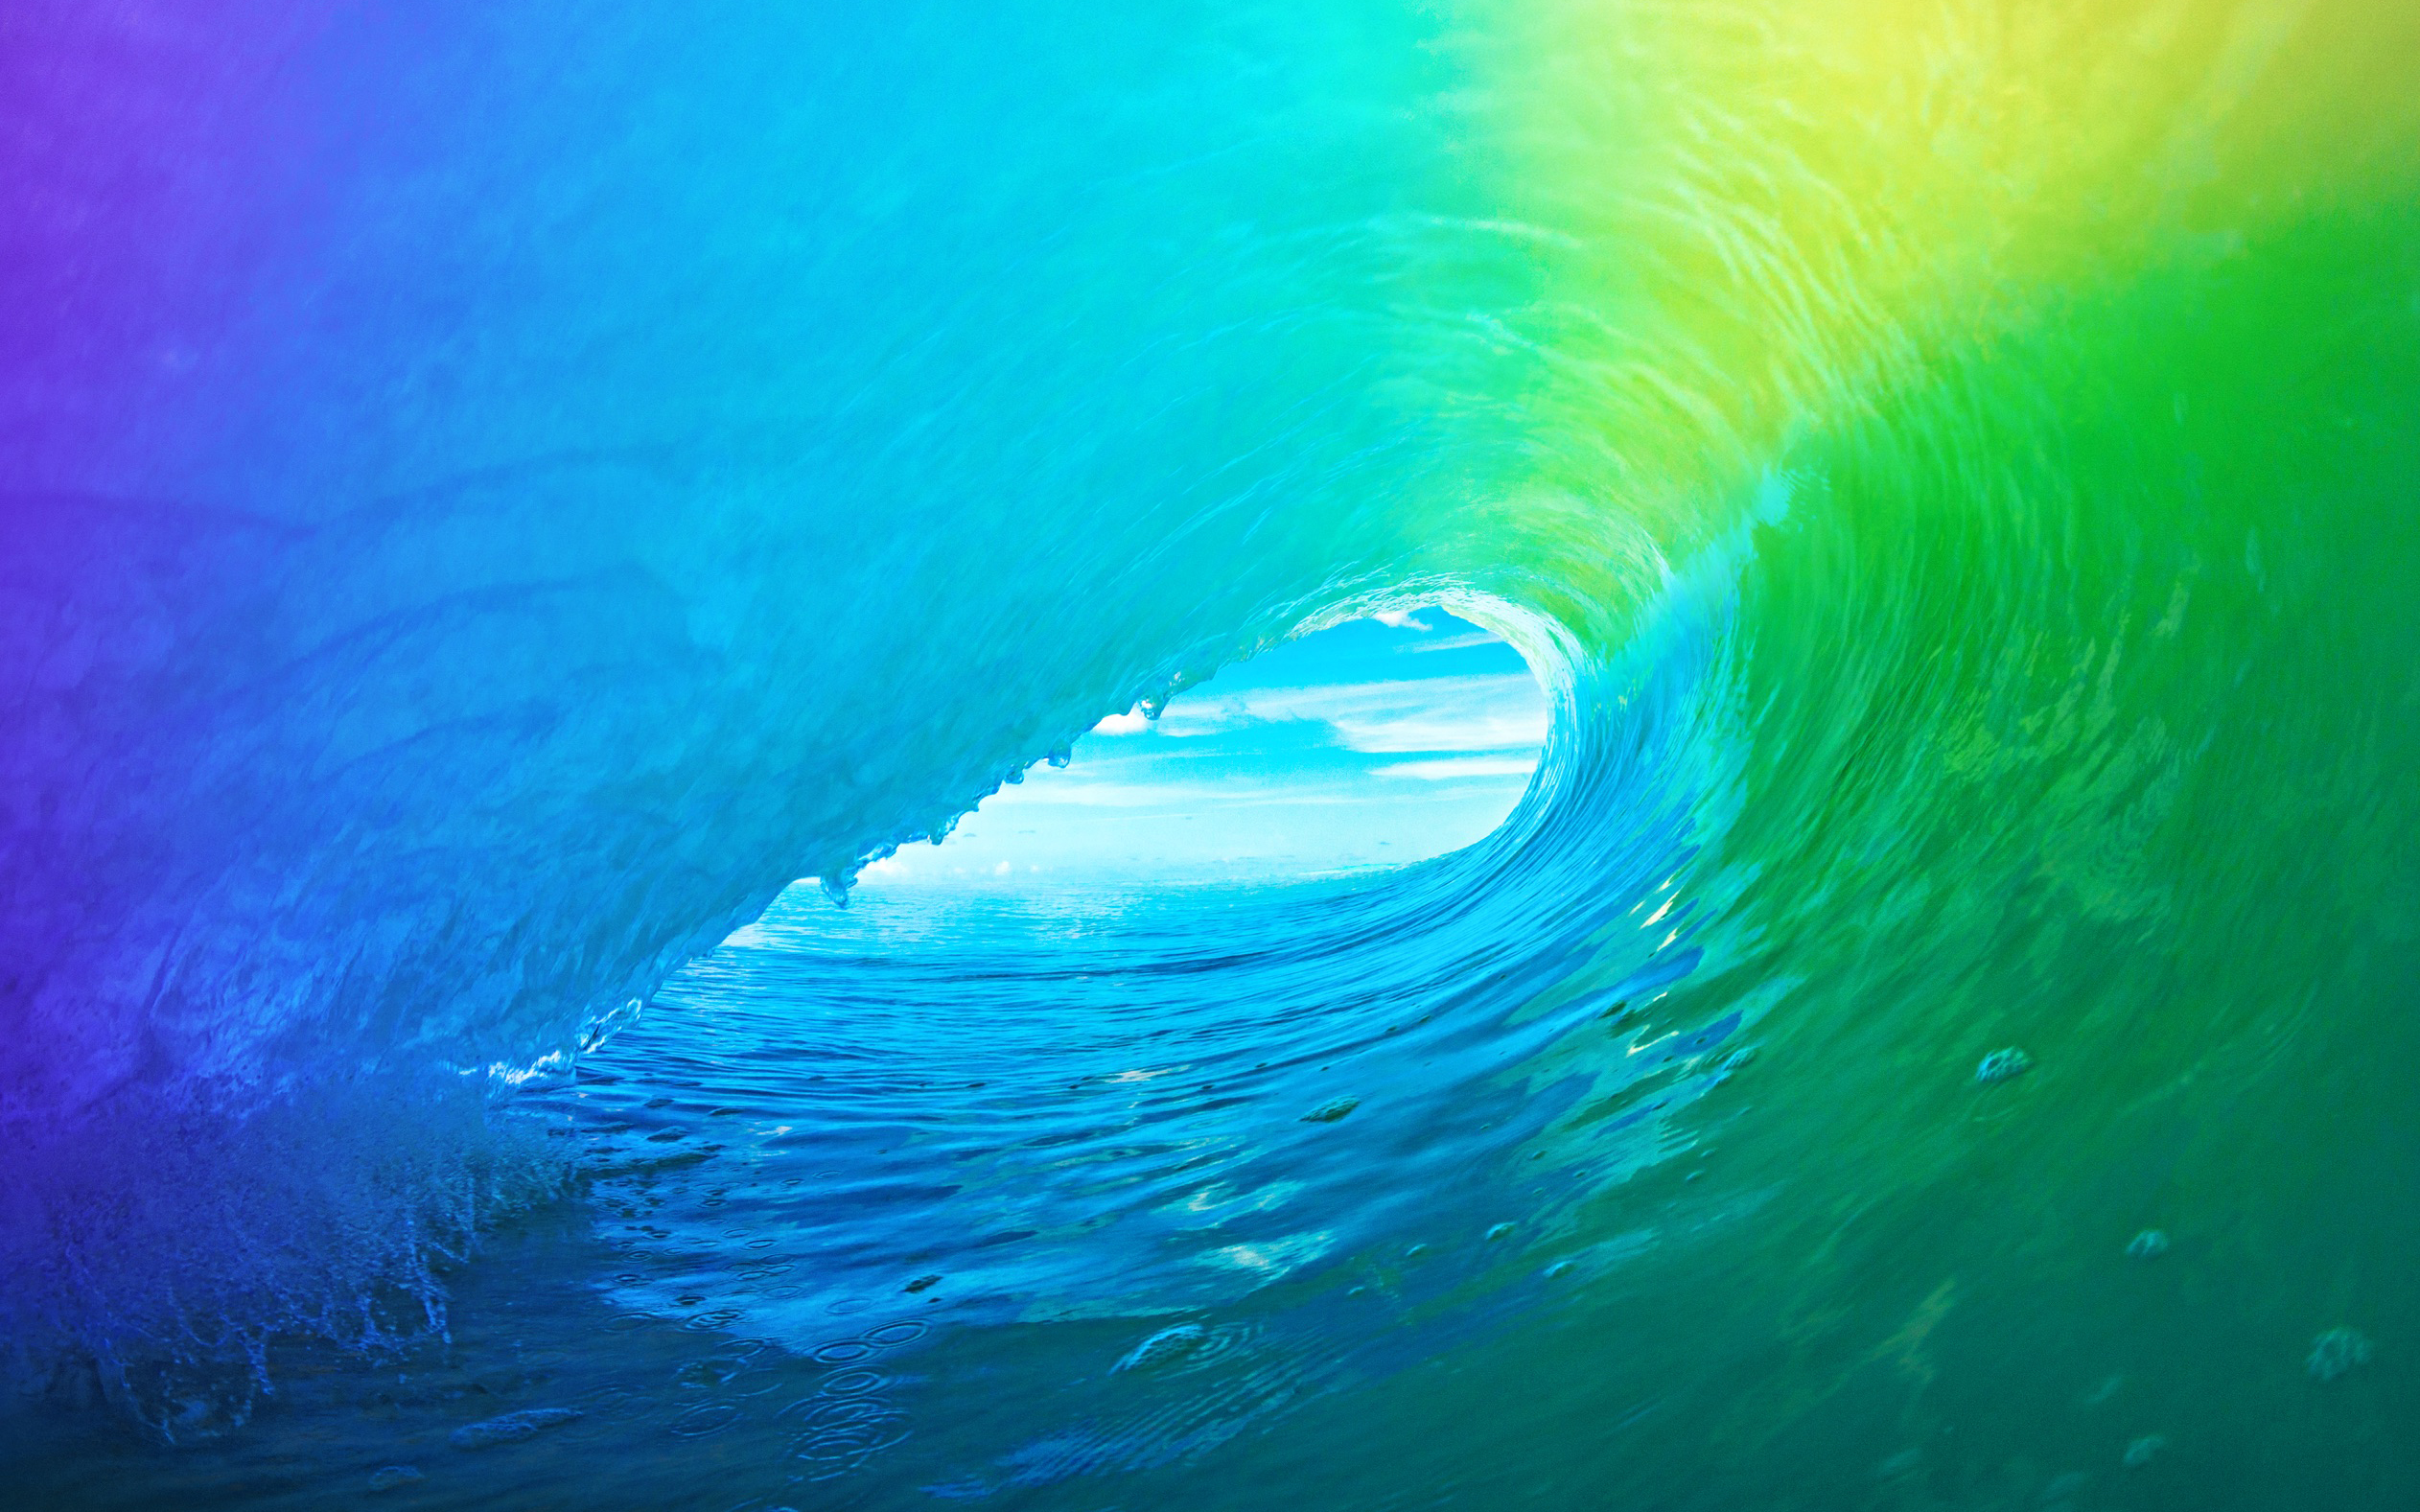 Download The Colored Wave Default iOS 9 Wallpaper 2524x1577